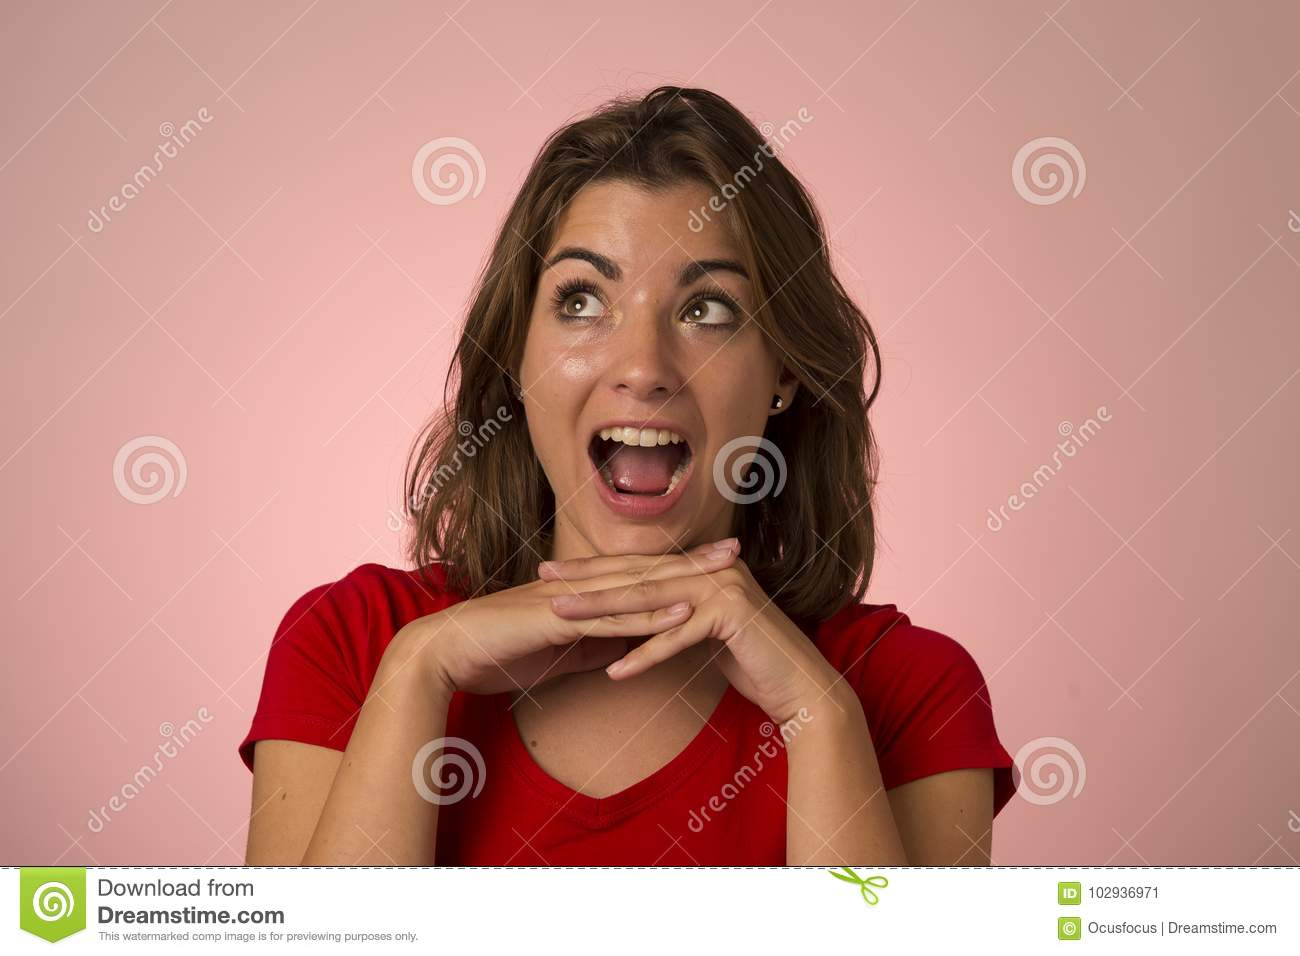 Young attractive and beautiful woman smiling excited and happy in nice shock and surprise showing positive and friendly face